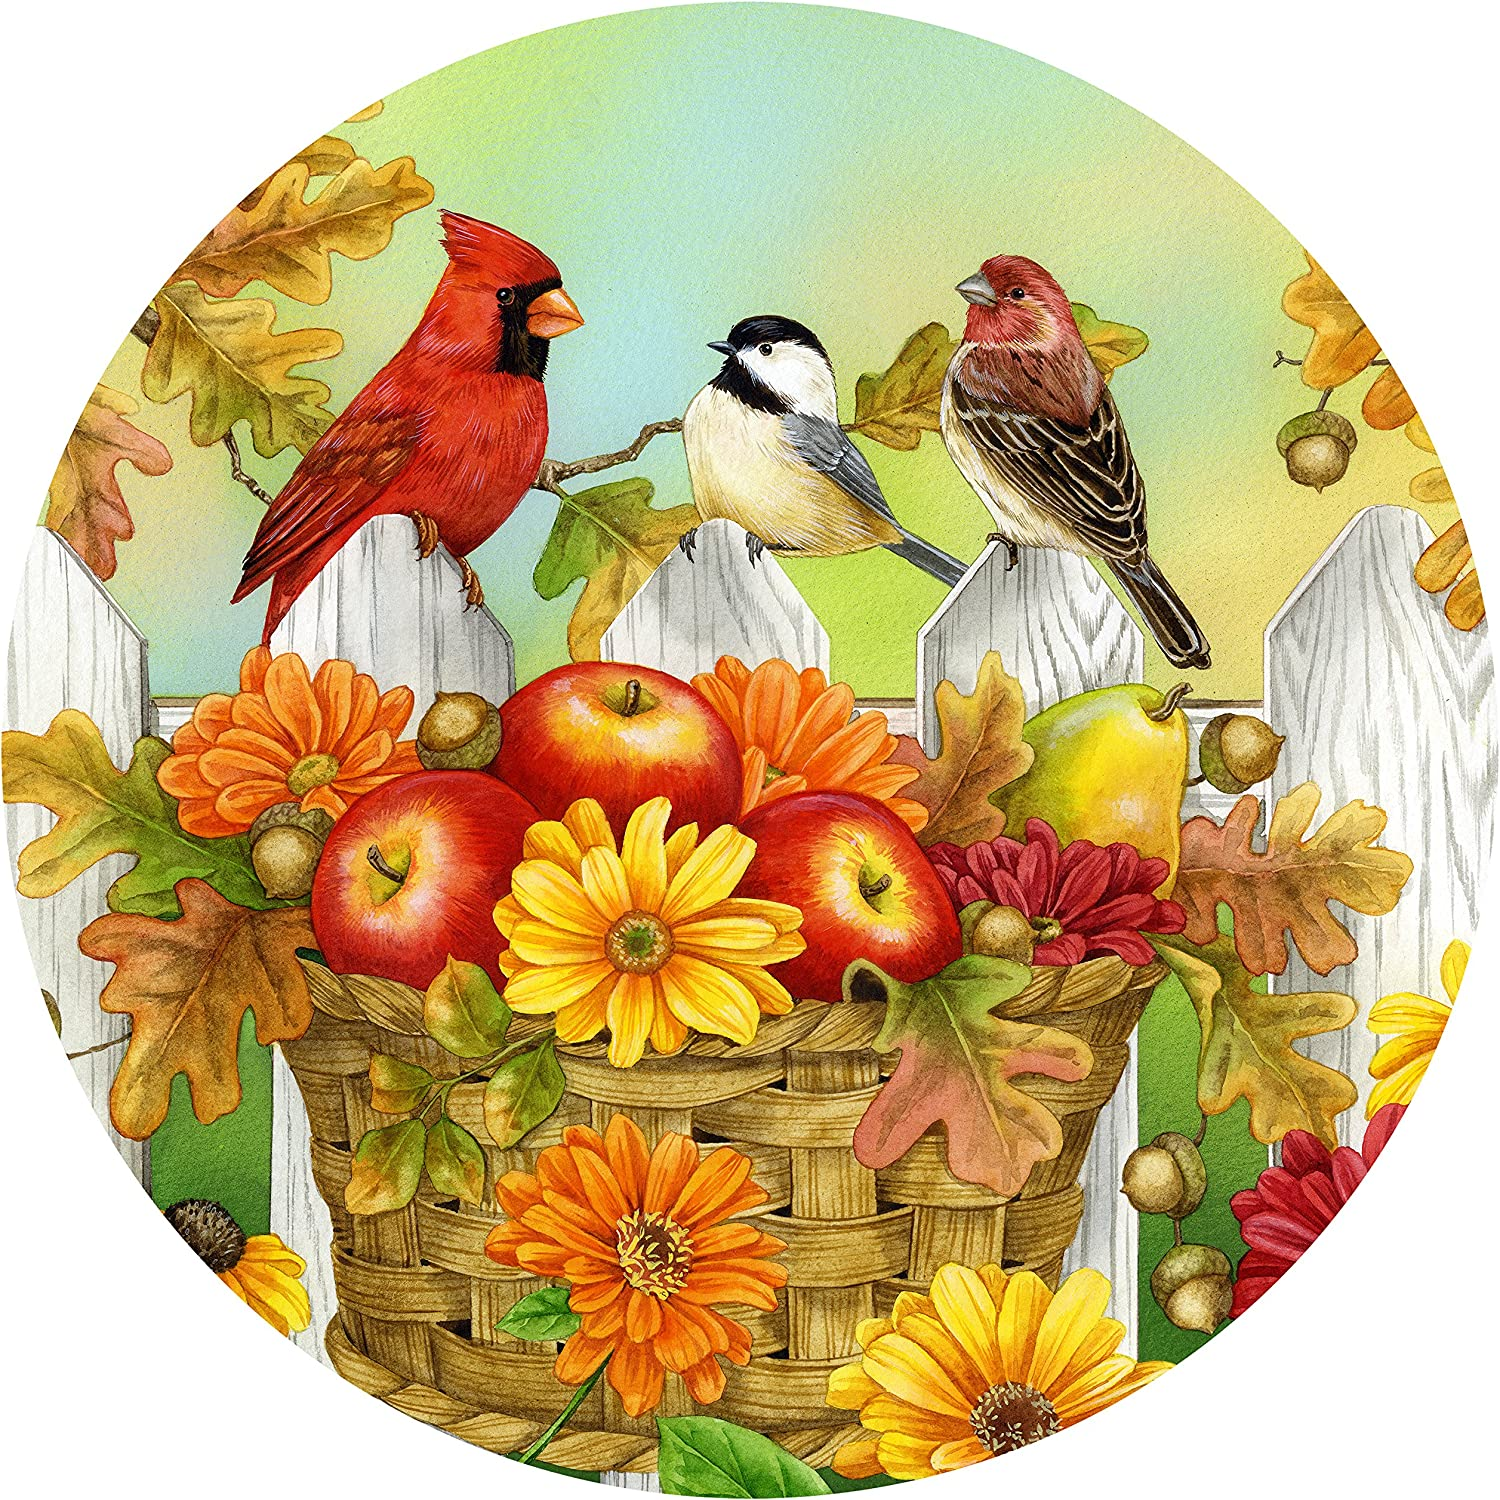 """The Jigsaw Puzzle Factory Jane Maday Rounds Apples & Acorns, Harvest Puzzle Games for Adults and Kids Ages 12 and Up, Made in the USA, 300 Piece, Full Size is 24"""" Around"""